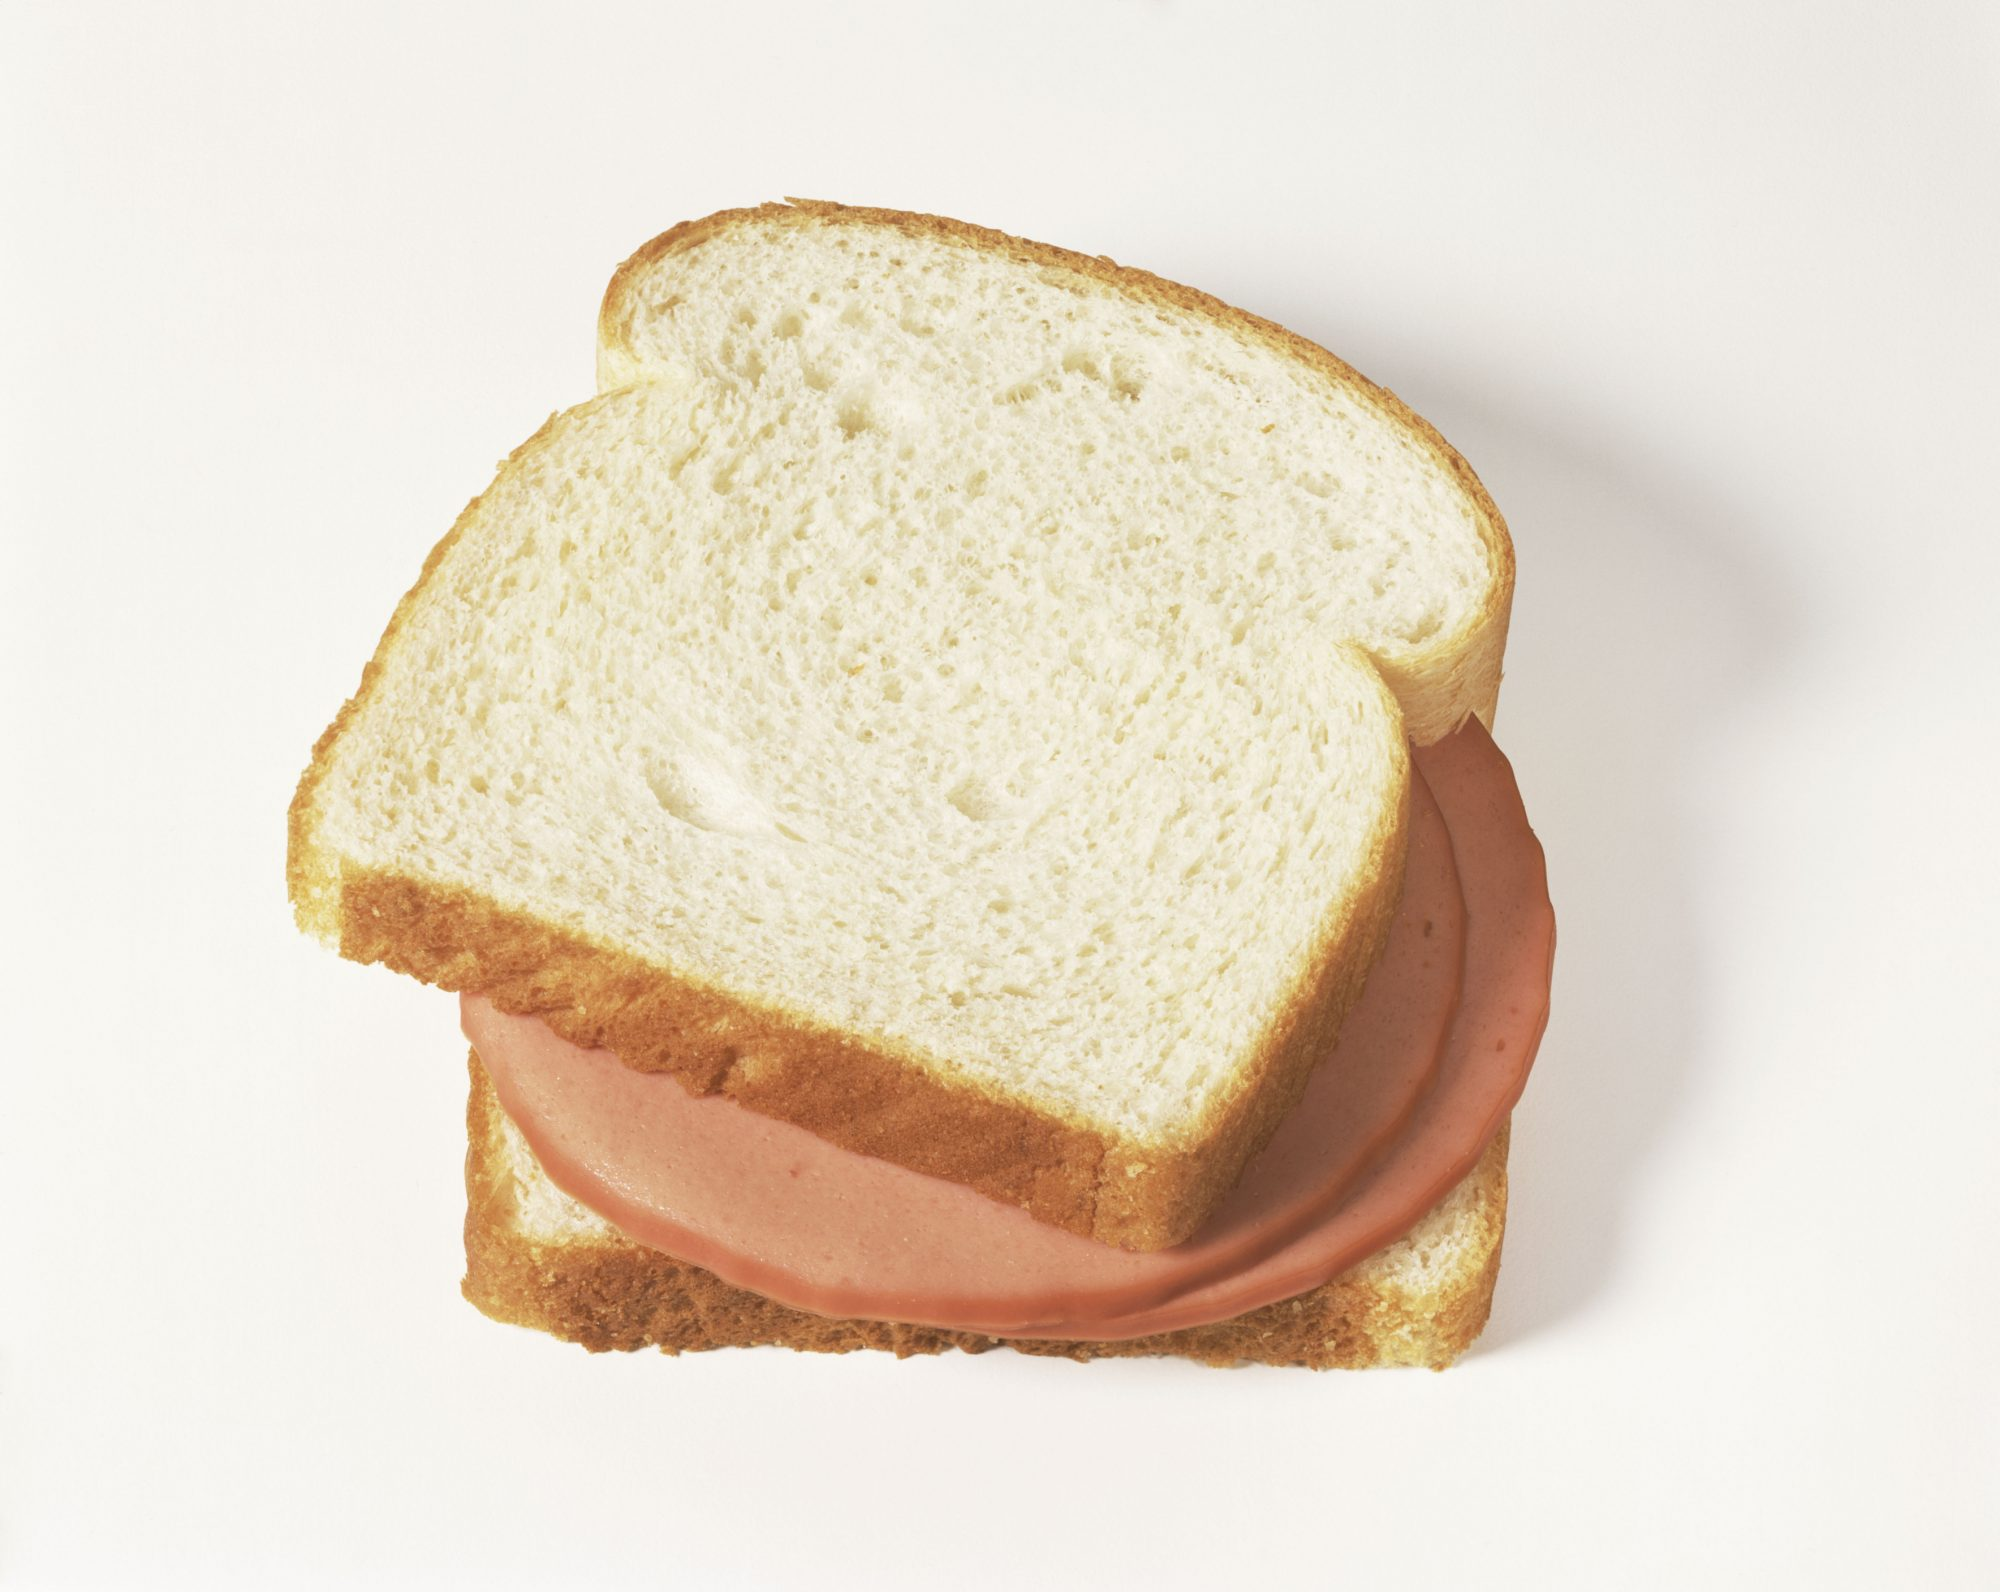 A New Mexico Neighborhood Is Being Terrorized by Unwanted Bologna Sandwiches